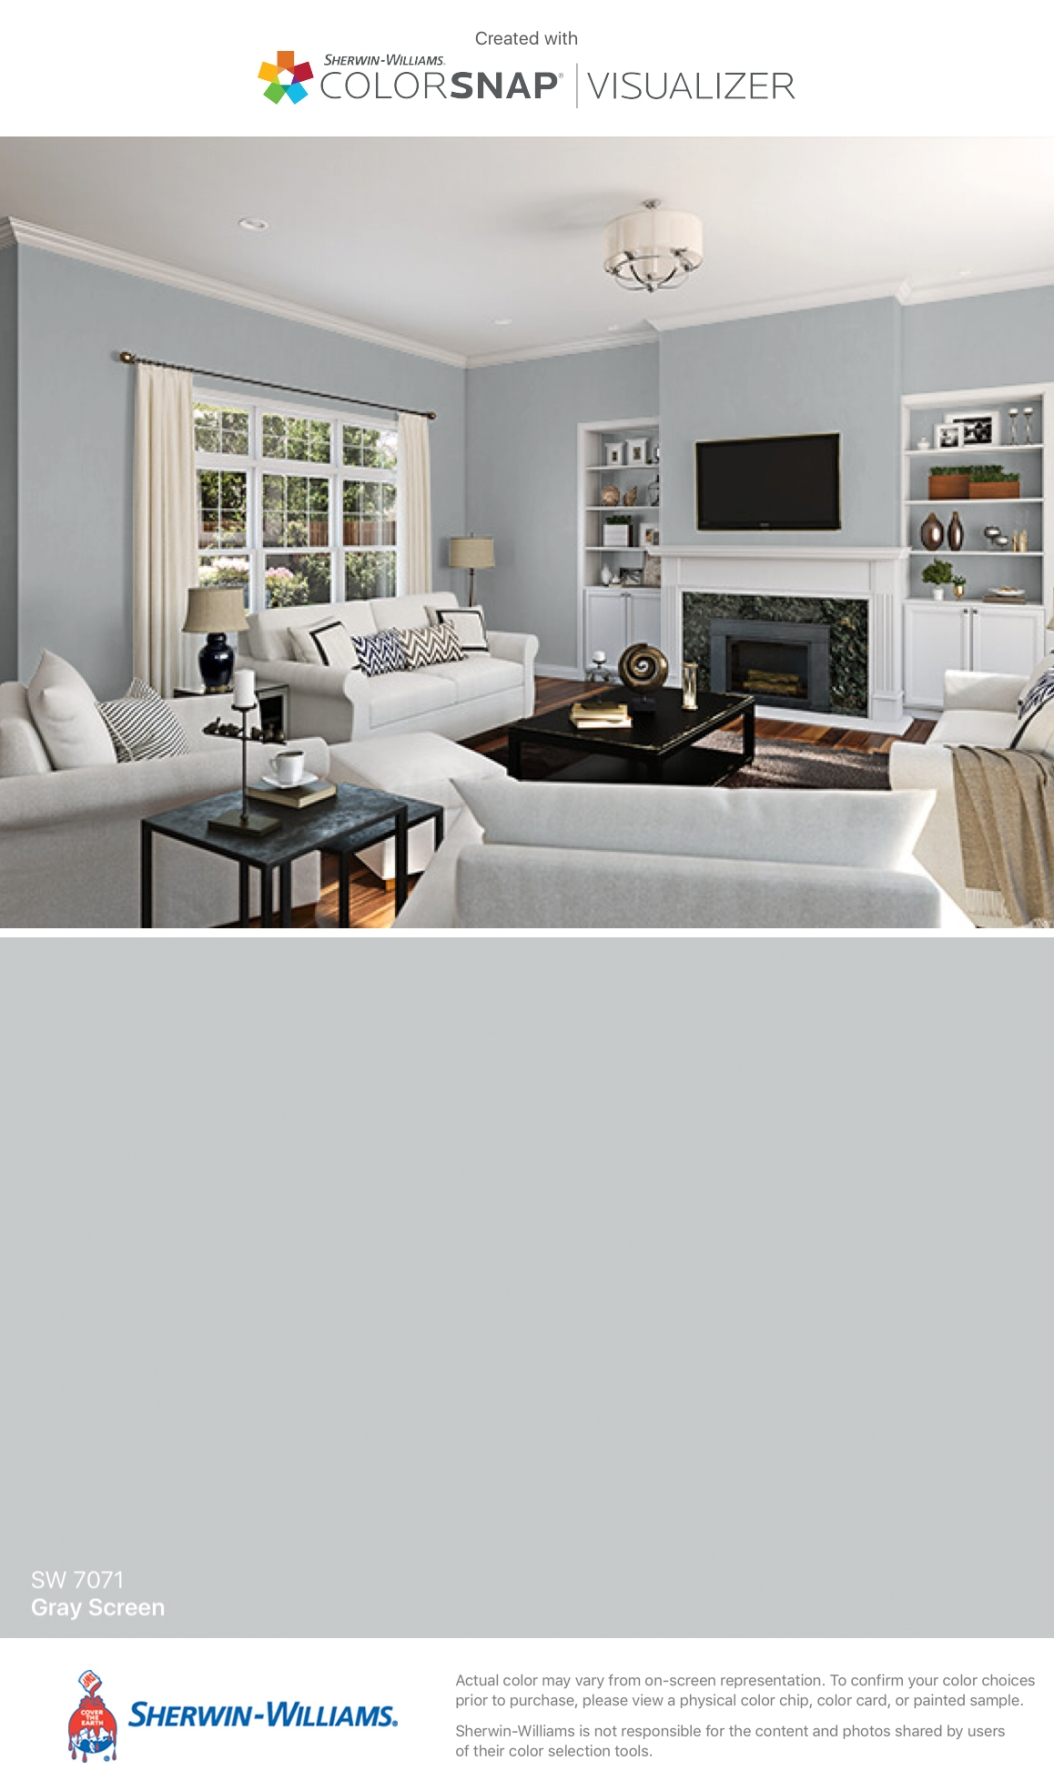 I Found This Color With Colorsnap® Visualizer For Iphone intended for Sherwin Williams Gray Screen